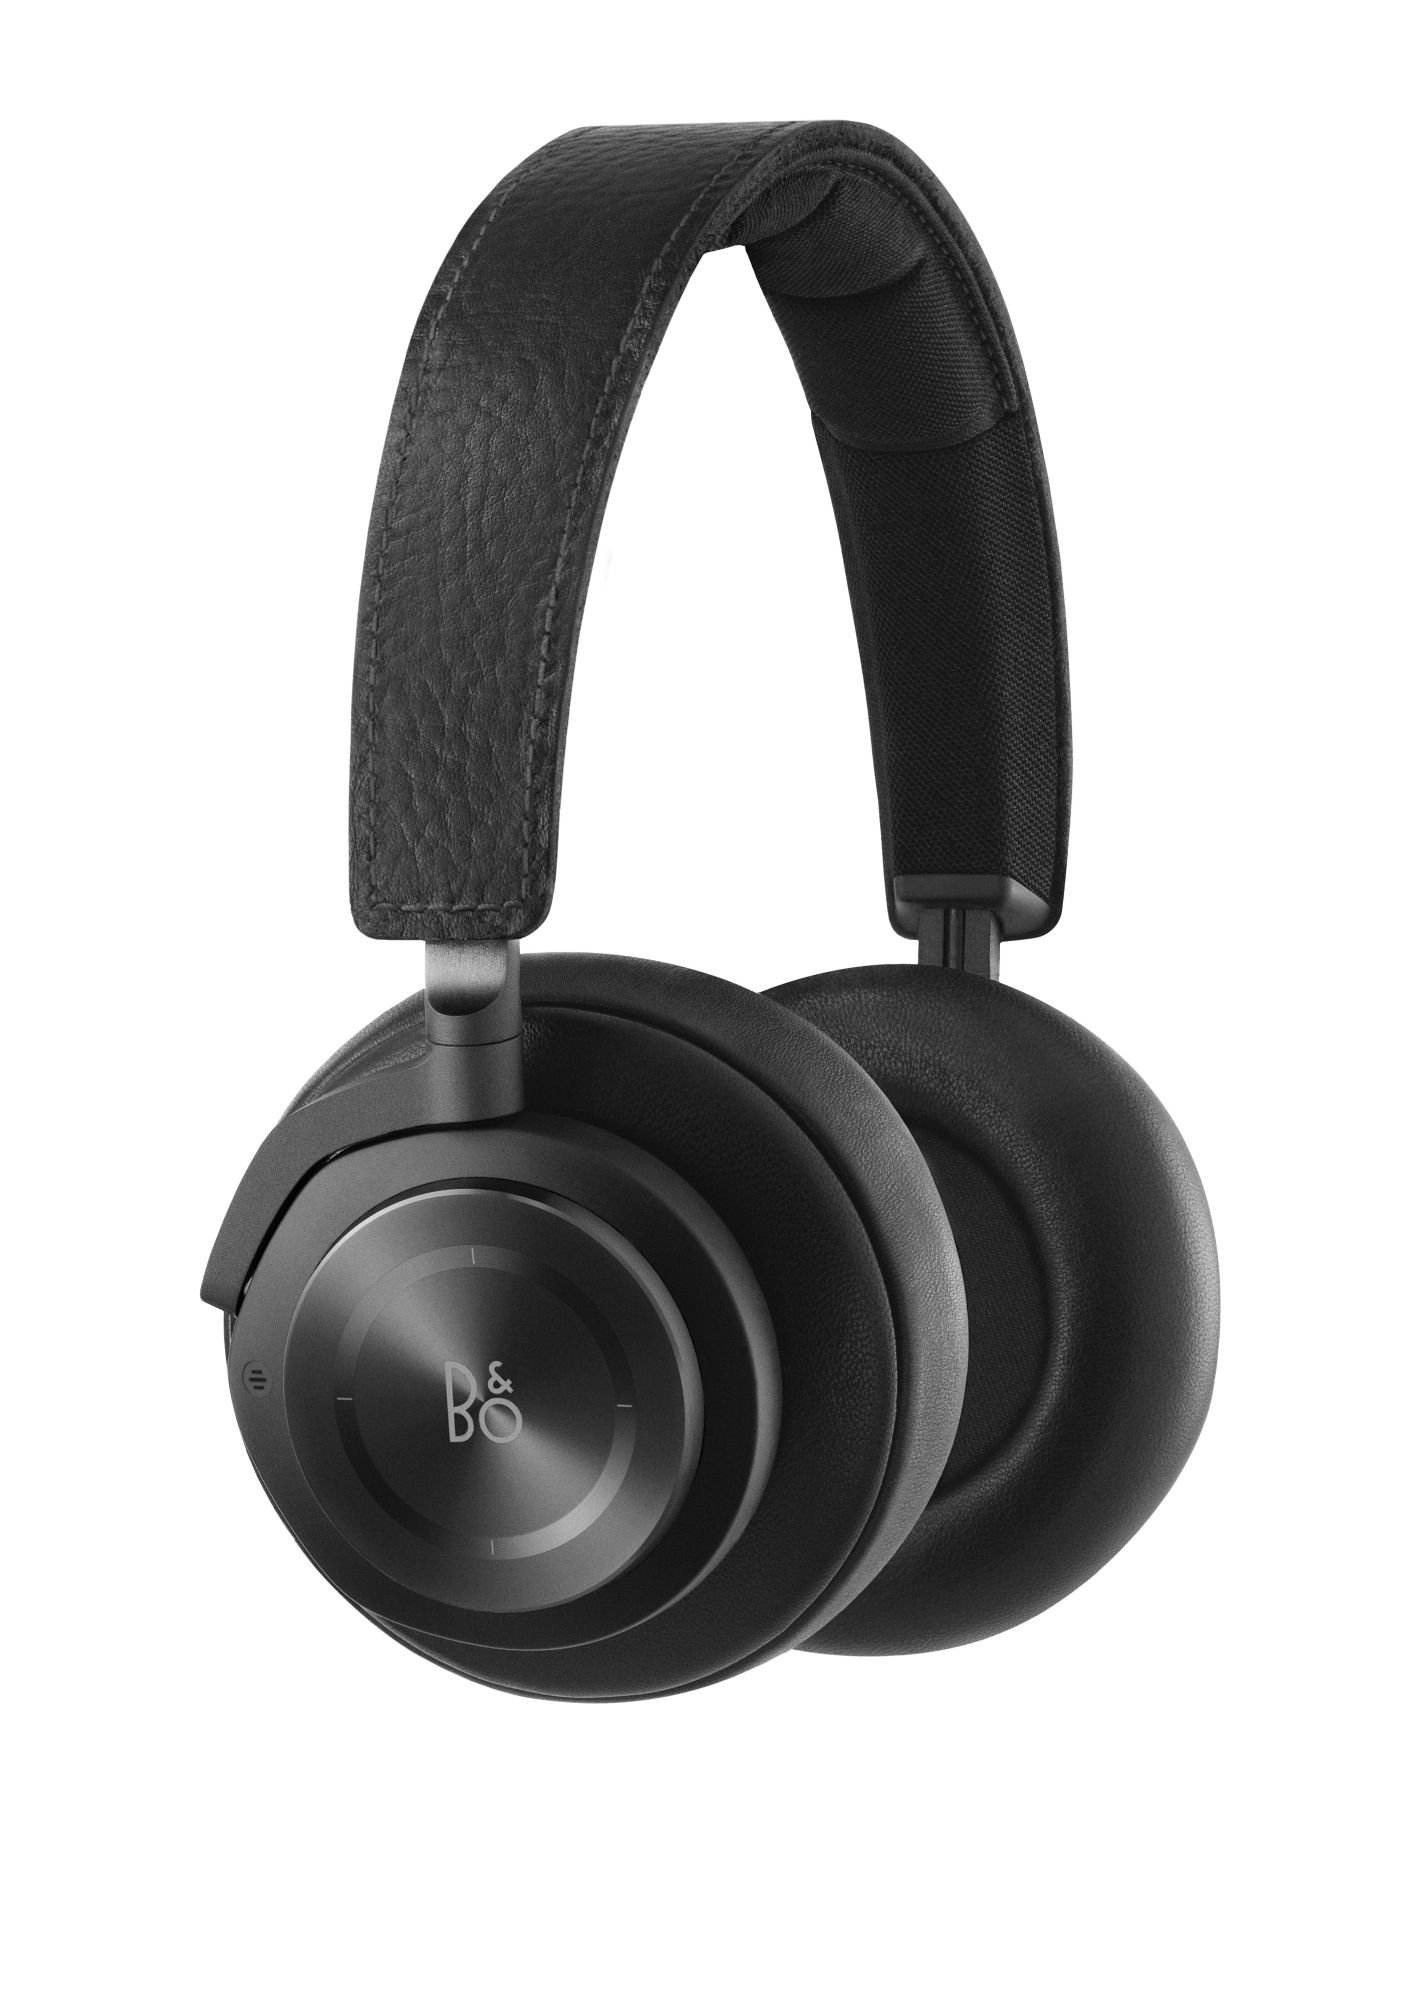 B&O PLAY by Bang & Olufsen Beoplay H9 Wireless Over-Ear Headphone with Active Noise Cancelling, Bluetooth 4.2 (Black) by B&O PLAY by Bang & Olufsen